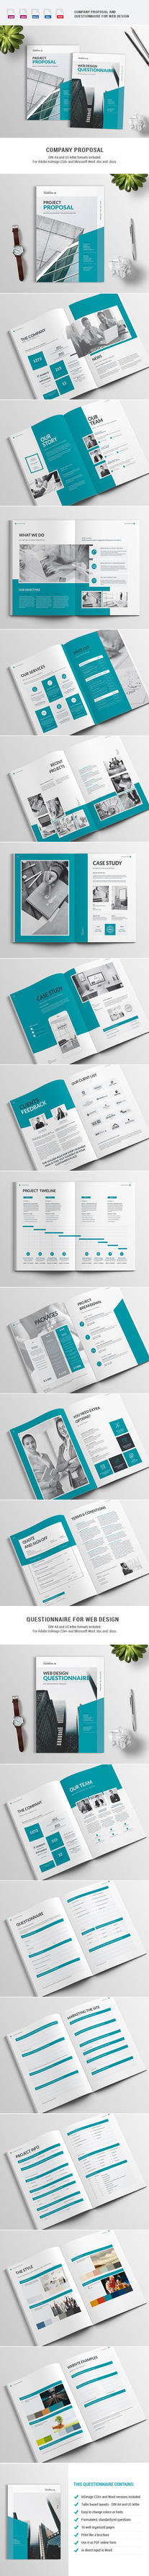 Proposal and Questionnaire - 2 Brochures - 1 Price by imagearea